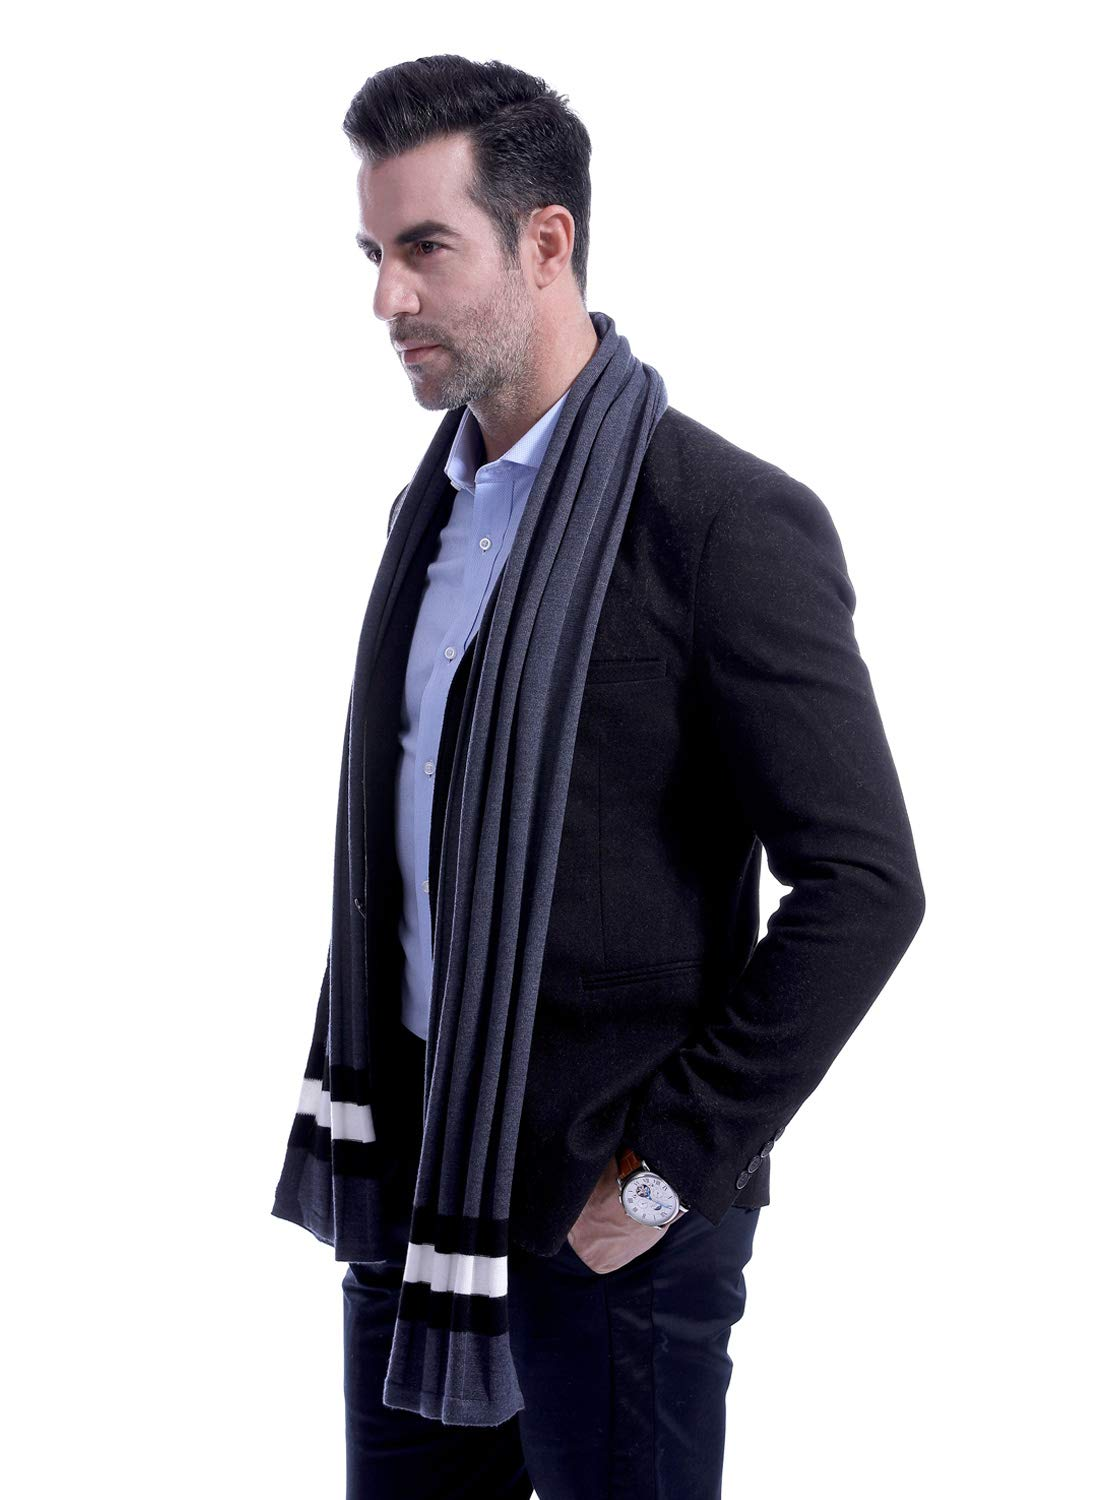 Men Plain Thermal Scarf Knitted Striped Winter Scarves One Size Leisure Business Men Warm Neckerchief Gray by Panegy (Image #2)